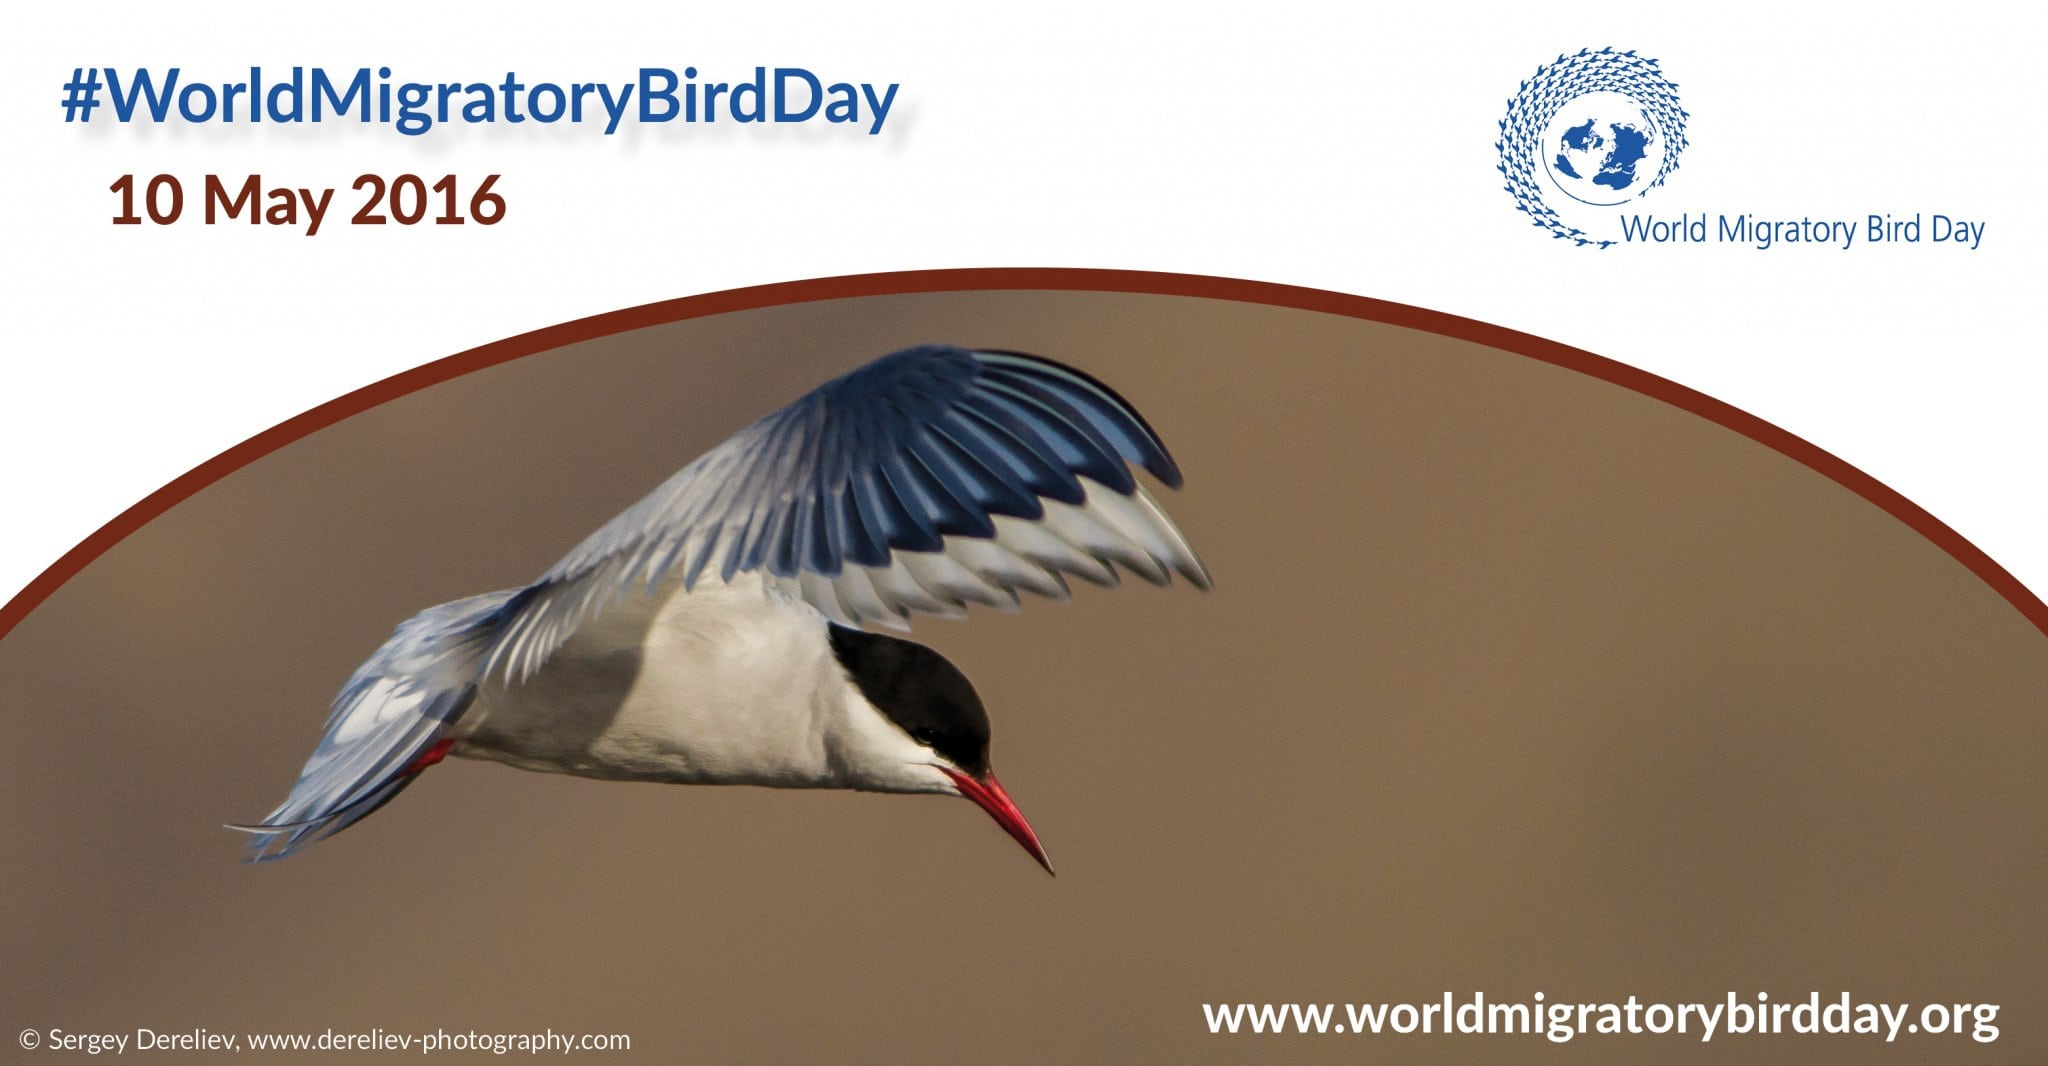 Image: World Migratory Bird Day